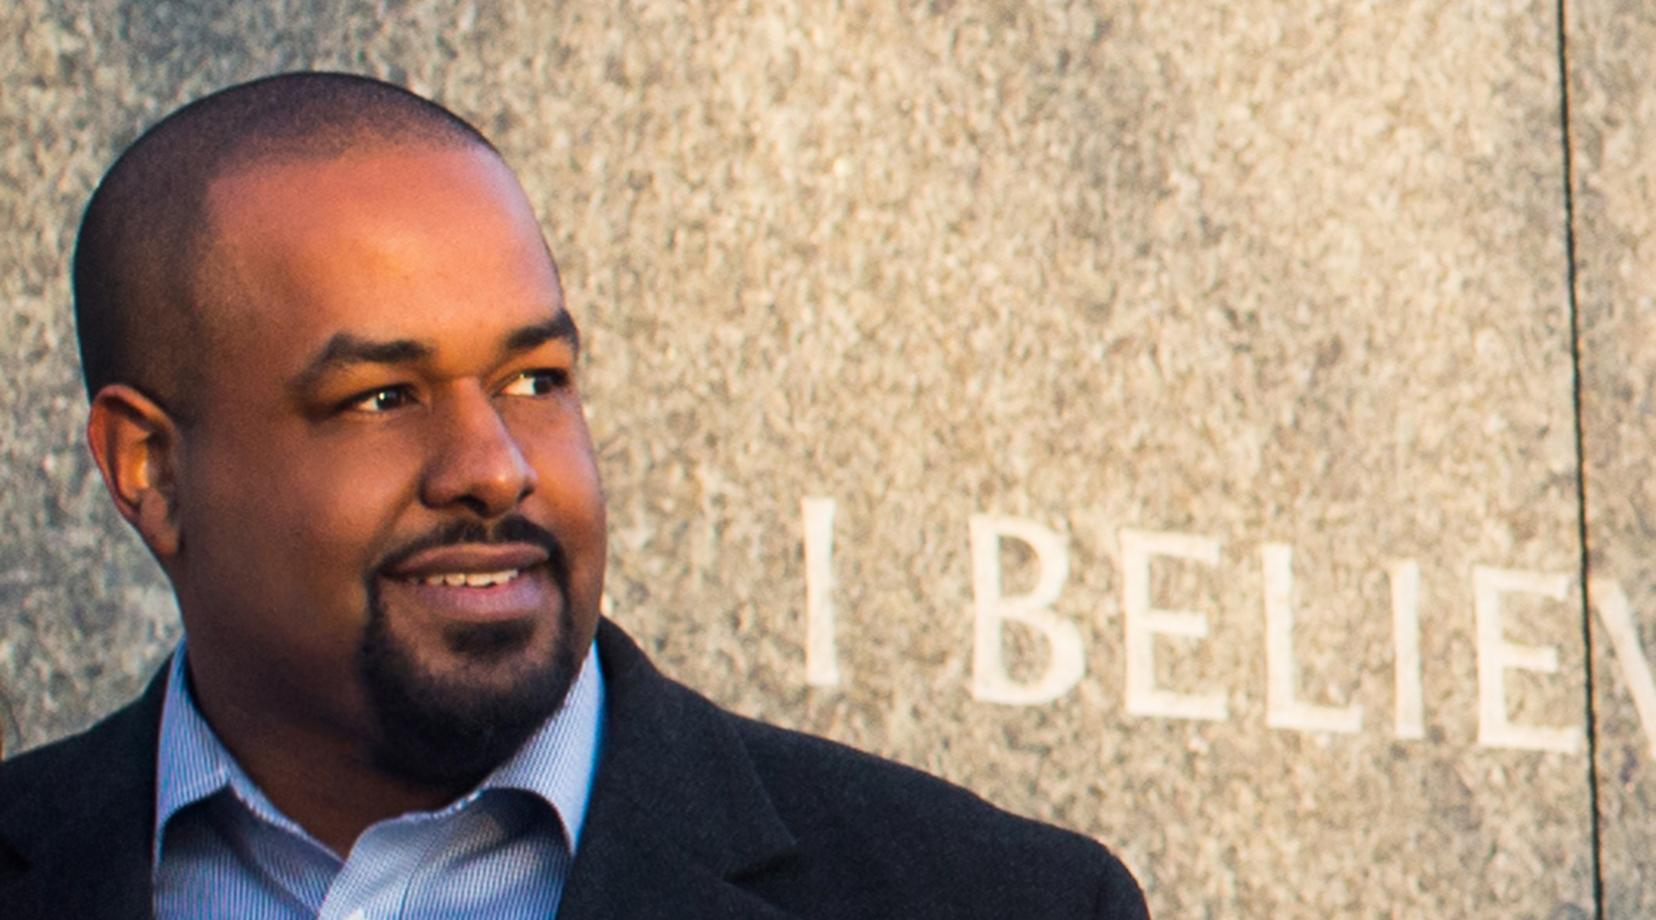 <p>Joshua DuBois, CEO, author, media commentator, and former Obama White House official, will give the parting words of wisdom to the graduating class of December 2019 during his keynote address at the Commencement Ceremony.</p>